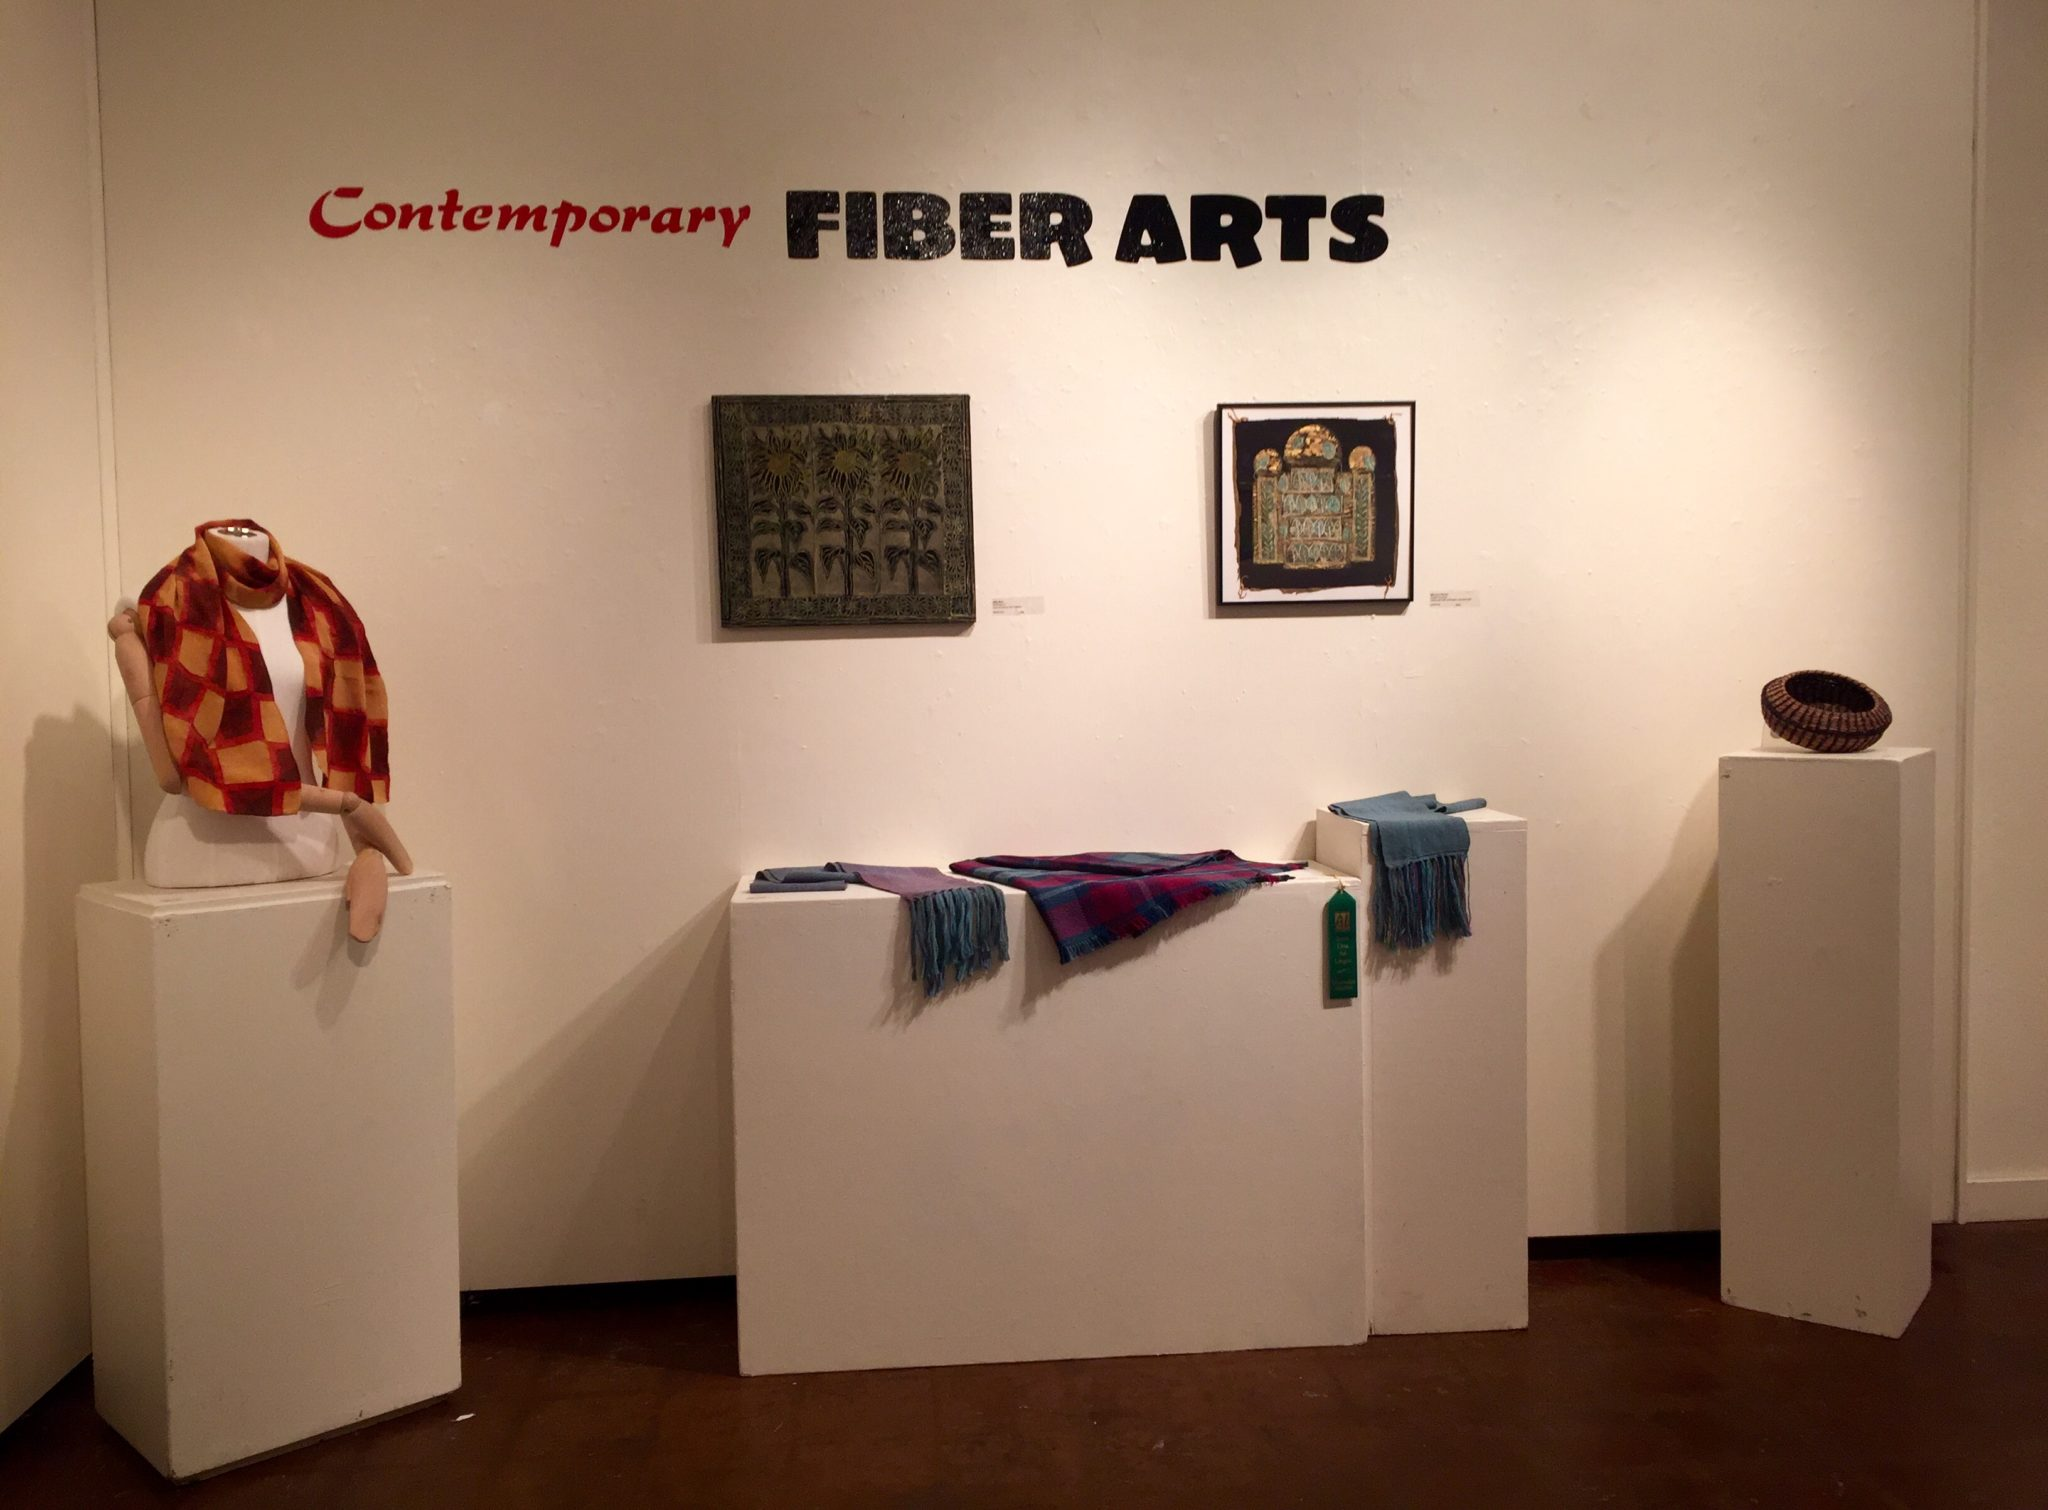 Contemporary Fiber Arts Exhibit at the Santa Cruz Art League.